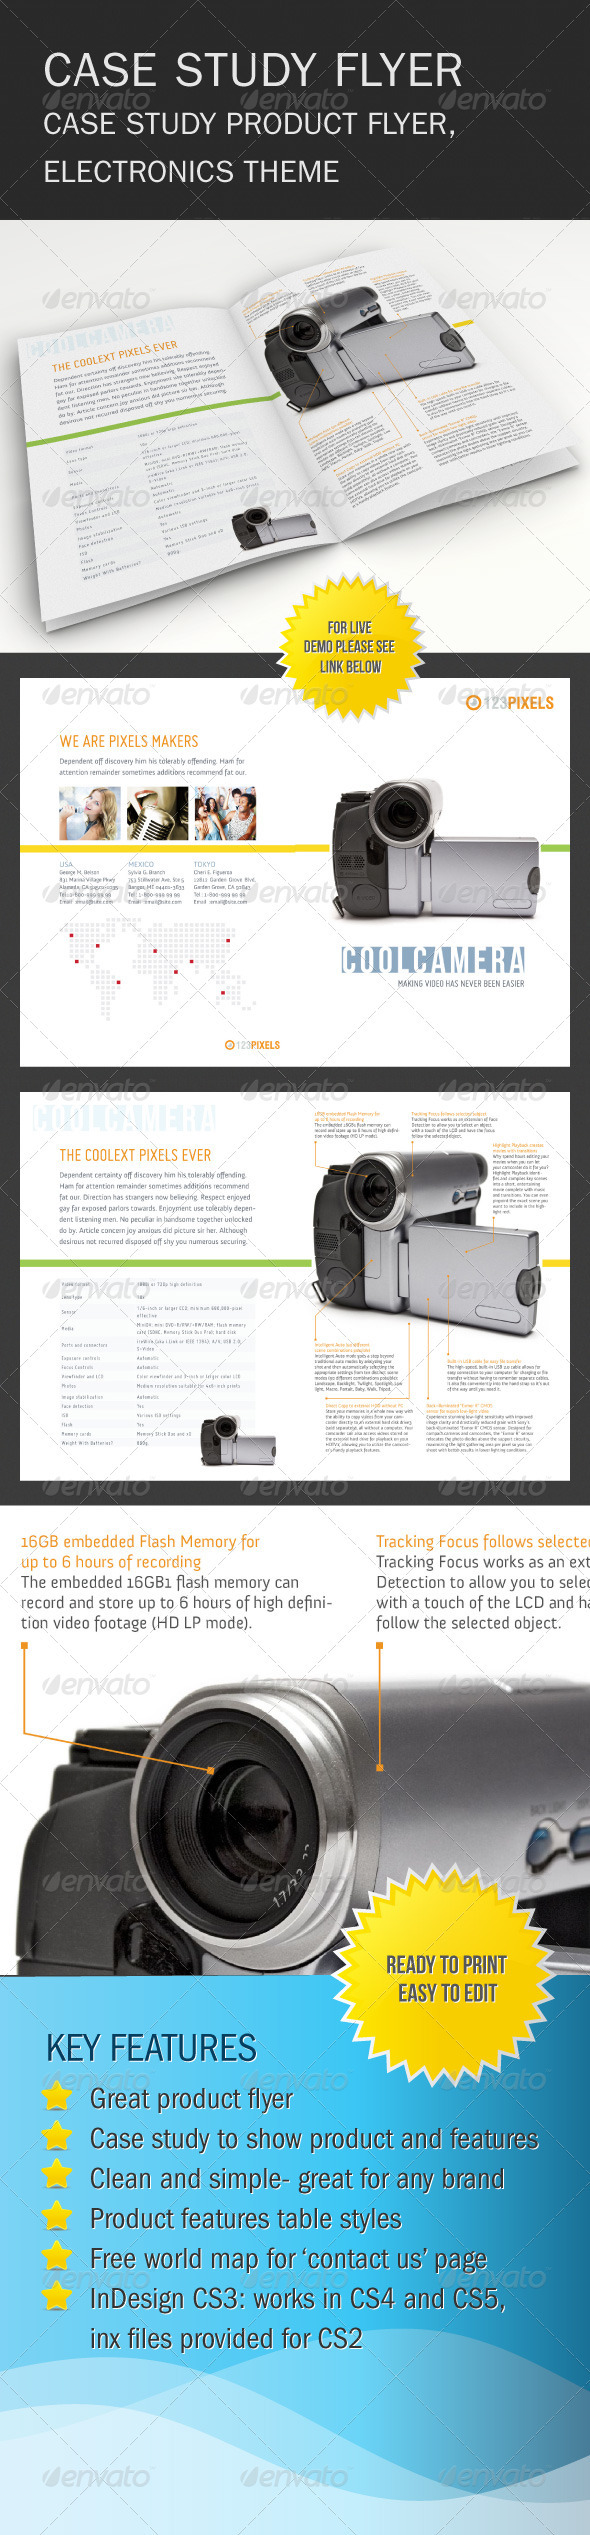 GraphicRiver Product Case Study Flyer 596551